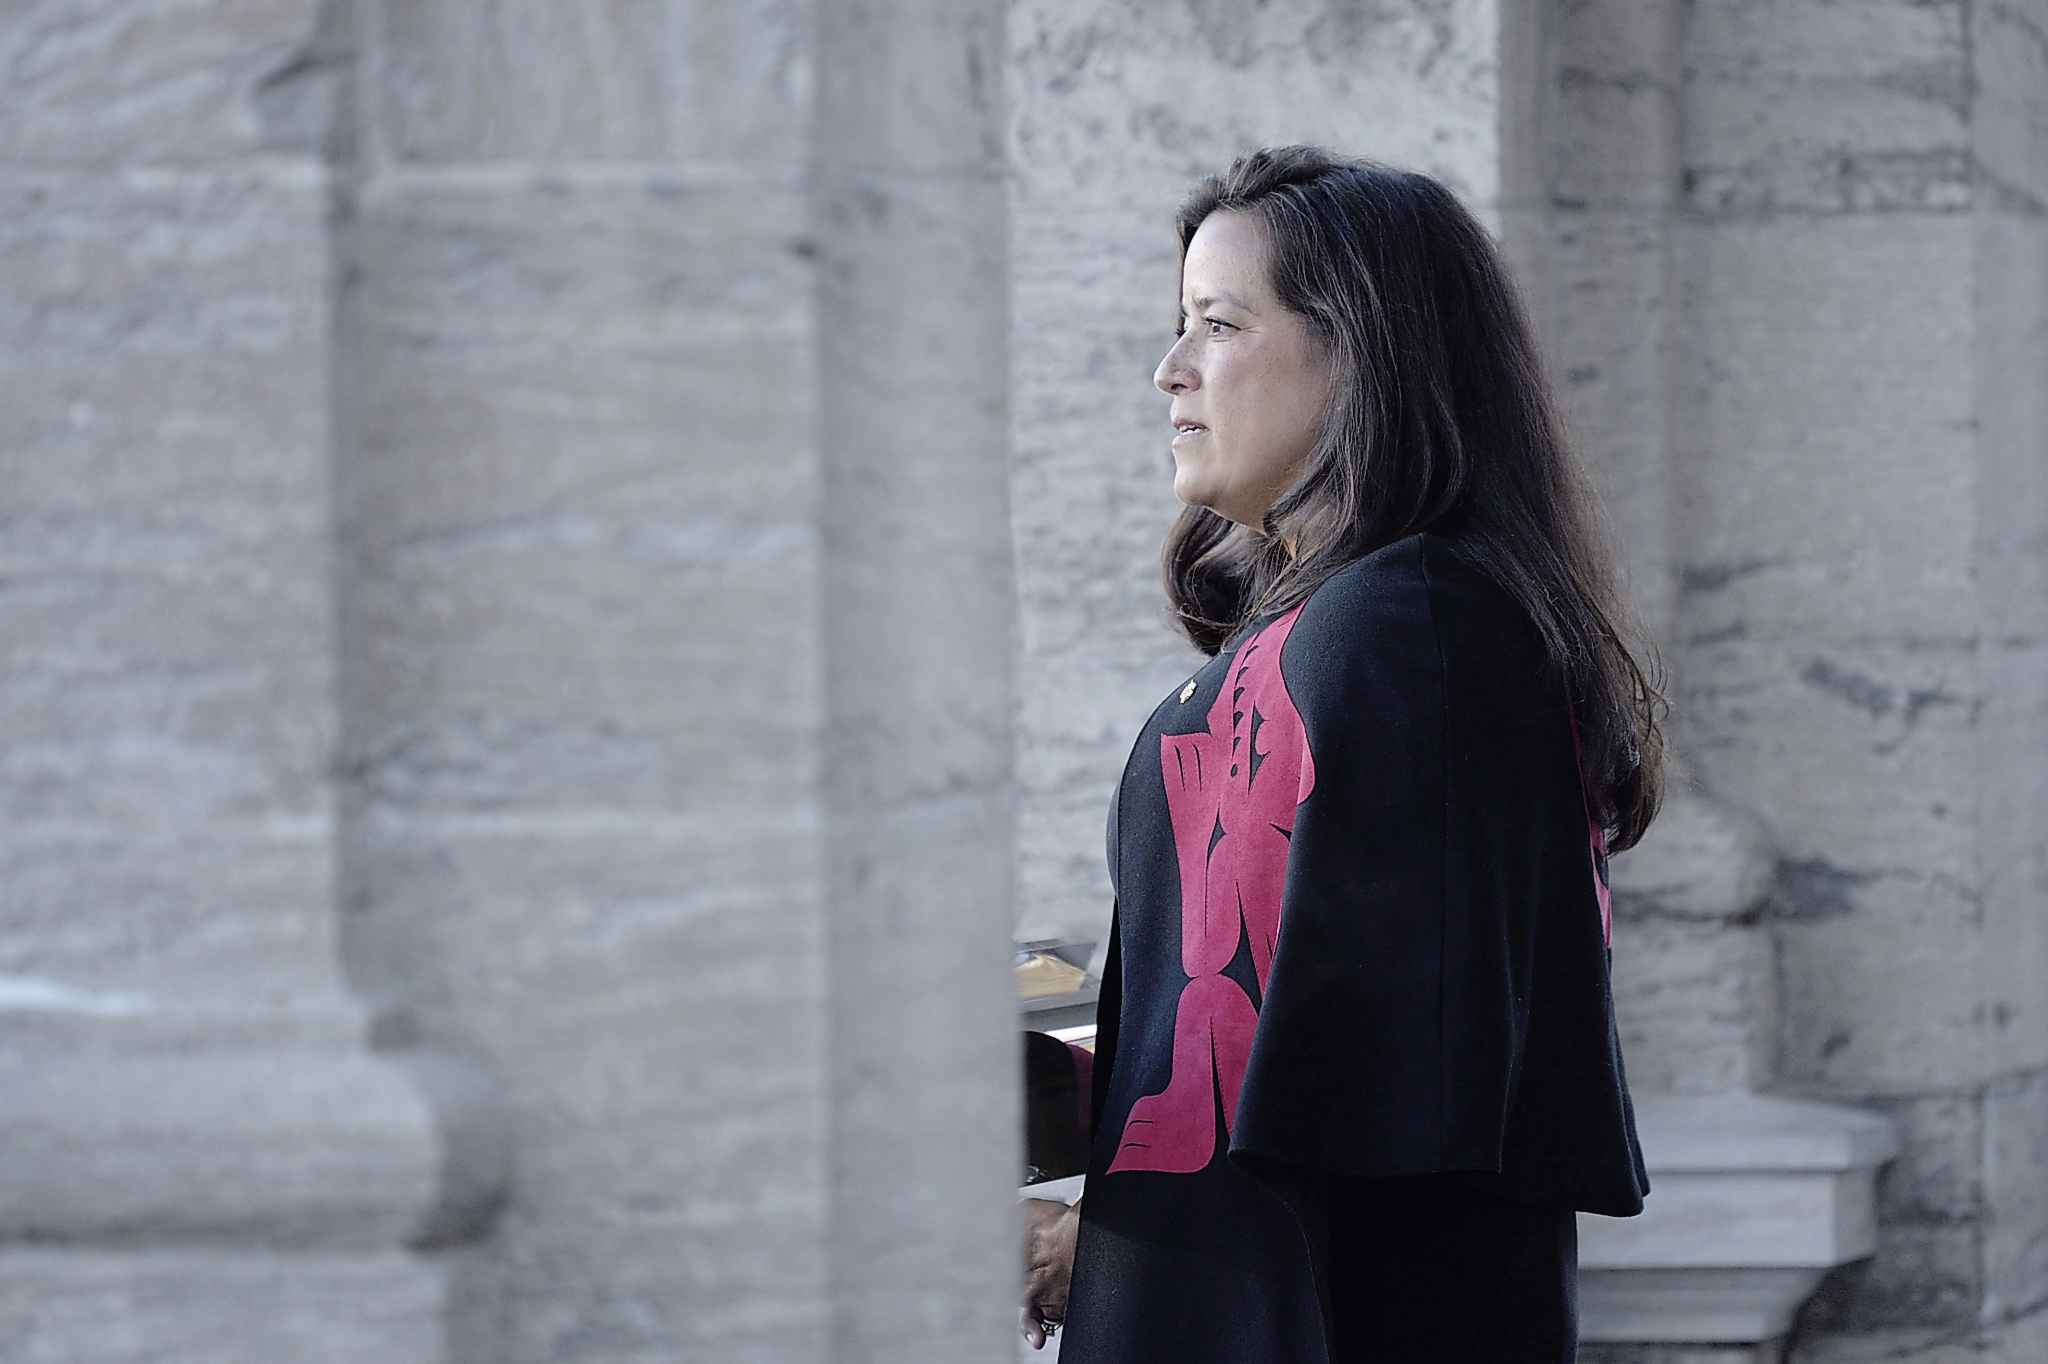 Vancouver-Granville MP Jody Wilson Raybould resigned from cabinet on Tuesday